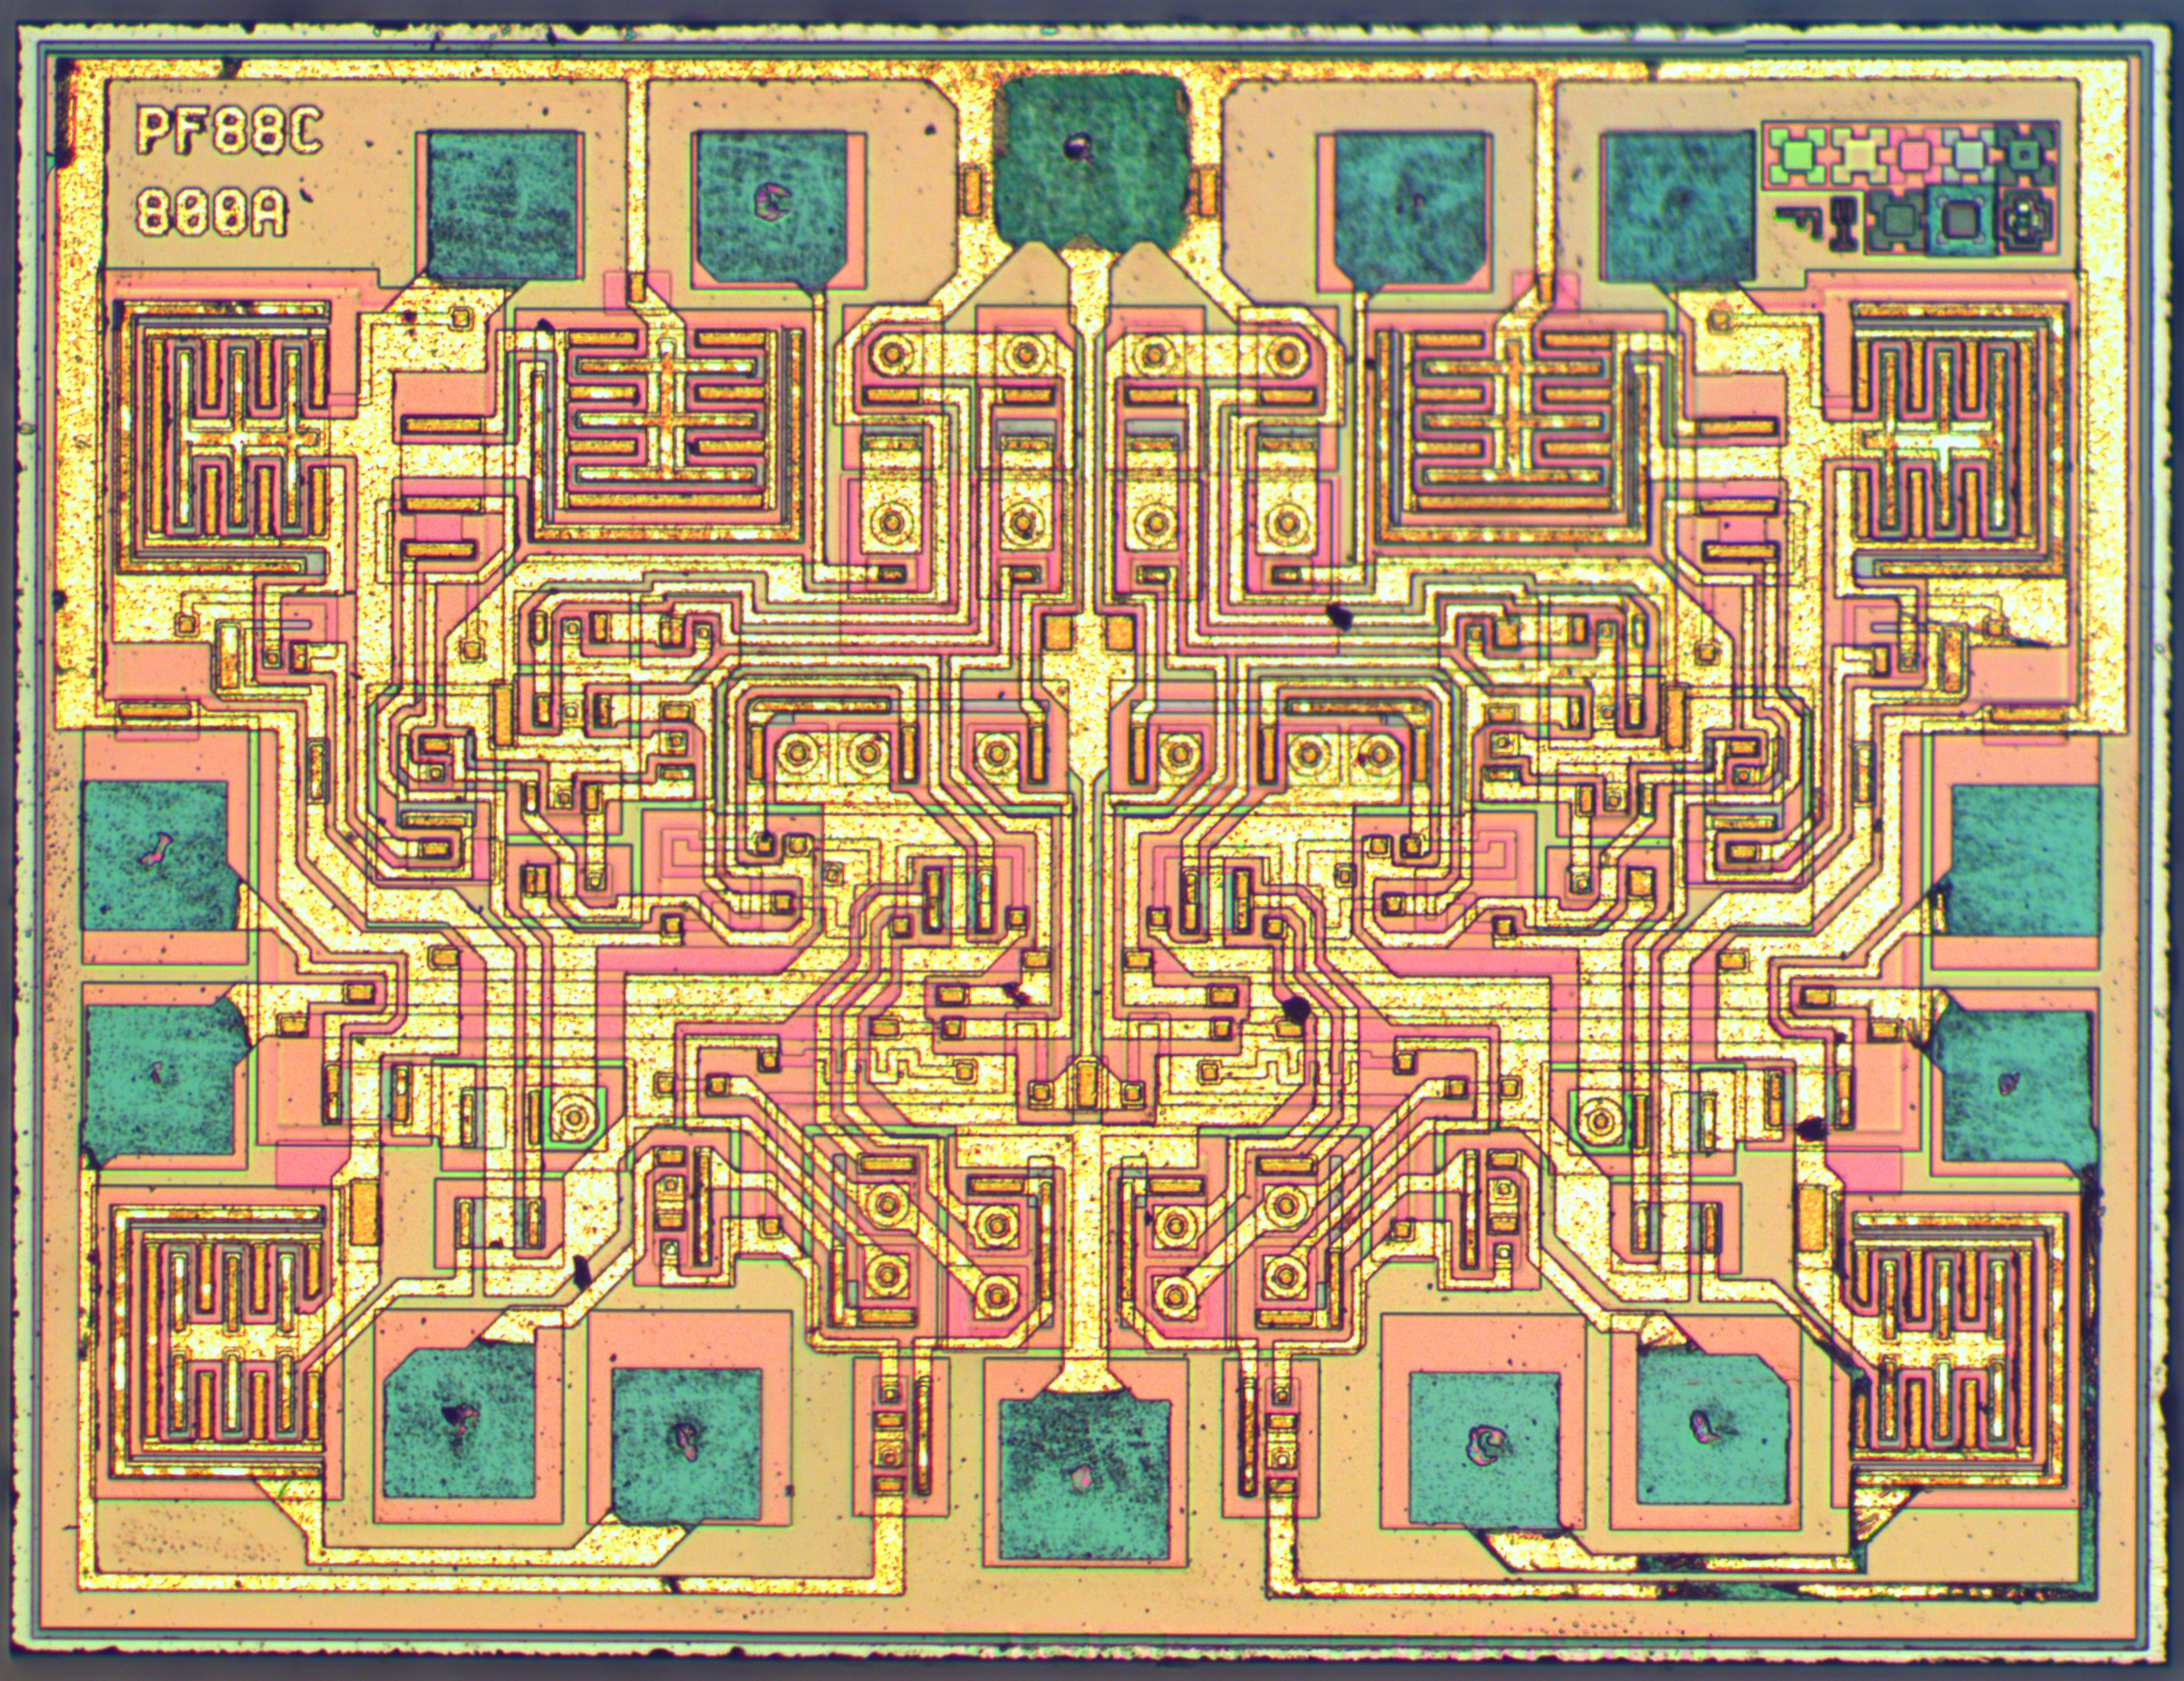 Filestm Ne556 Hd Wikimedia Commons 555 Timer Ic Circuits Pdf